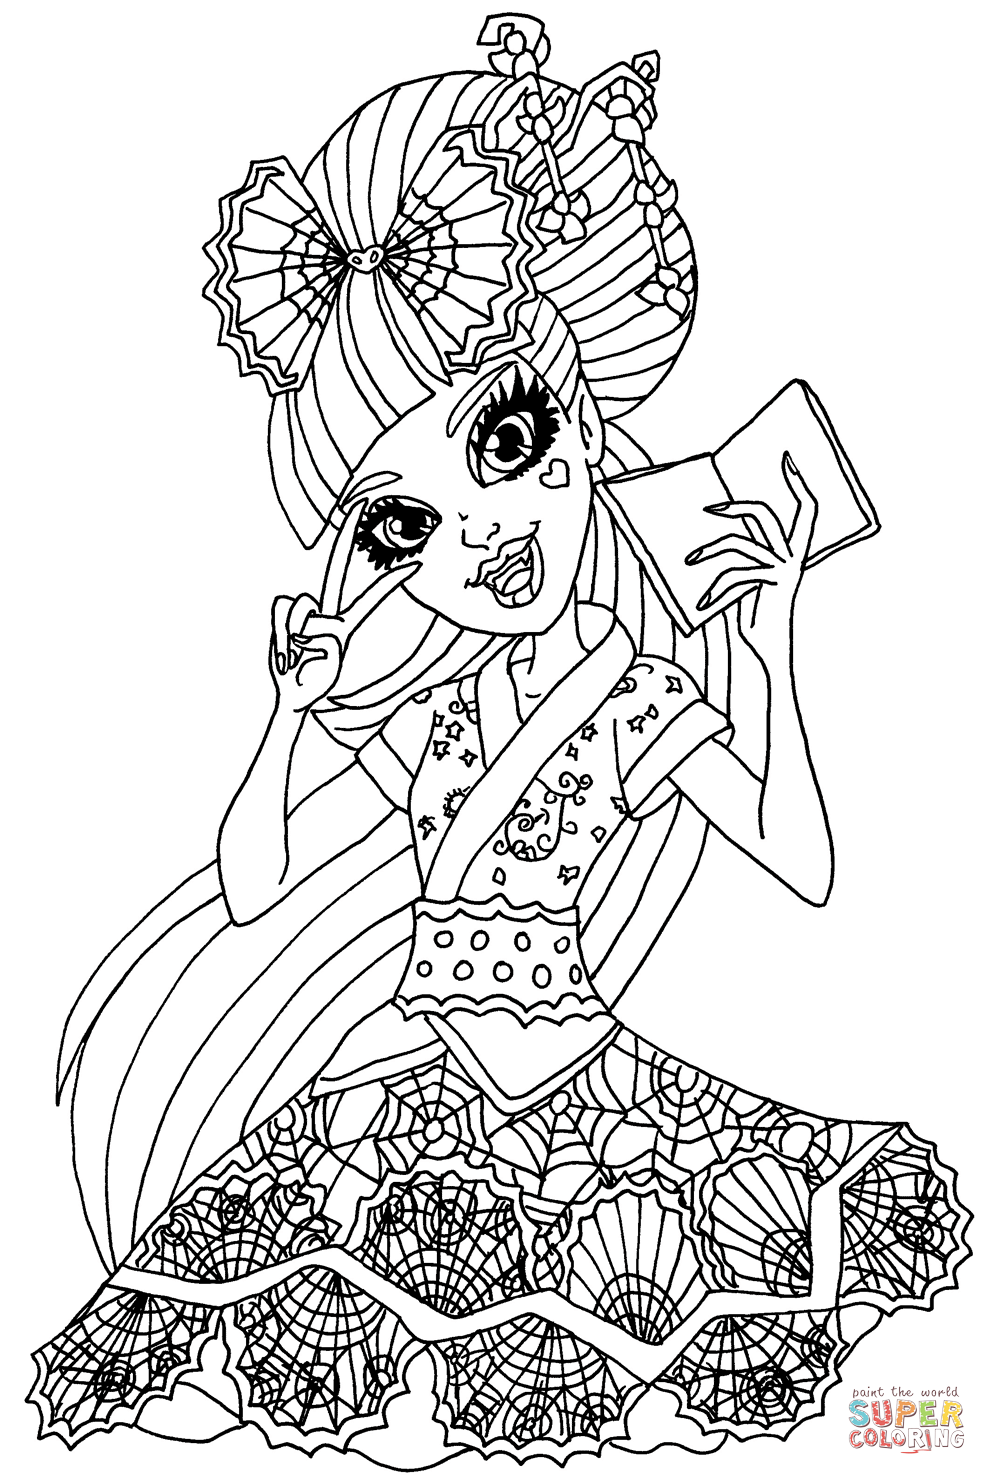 monster high black and white coloring pages draculaura exchange student coloring page free printable high coloring monster white pages black and